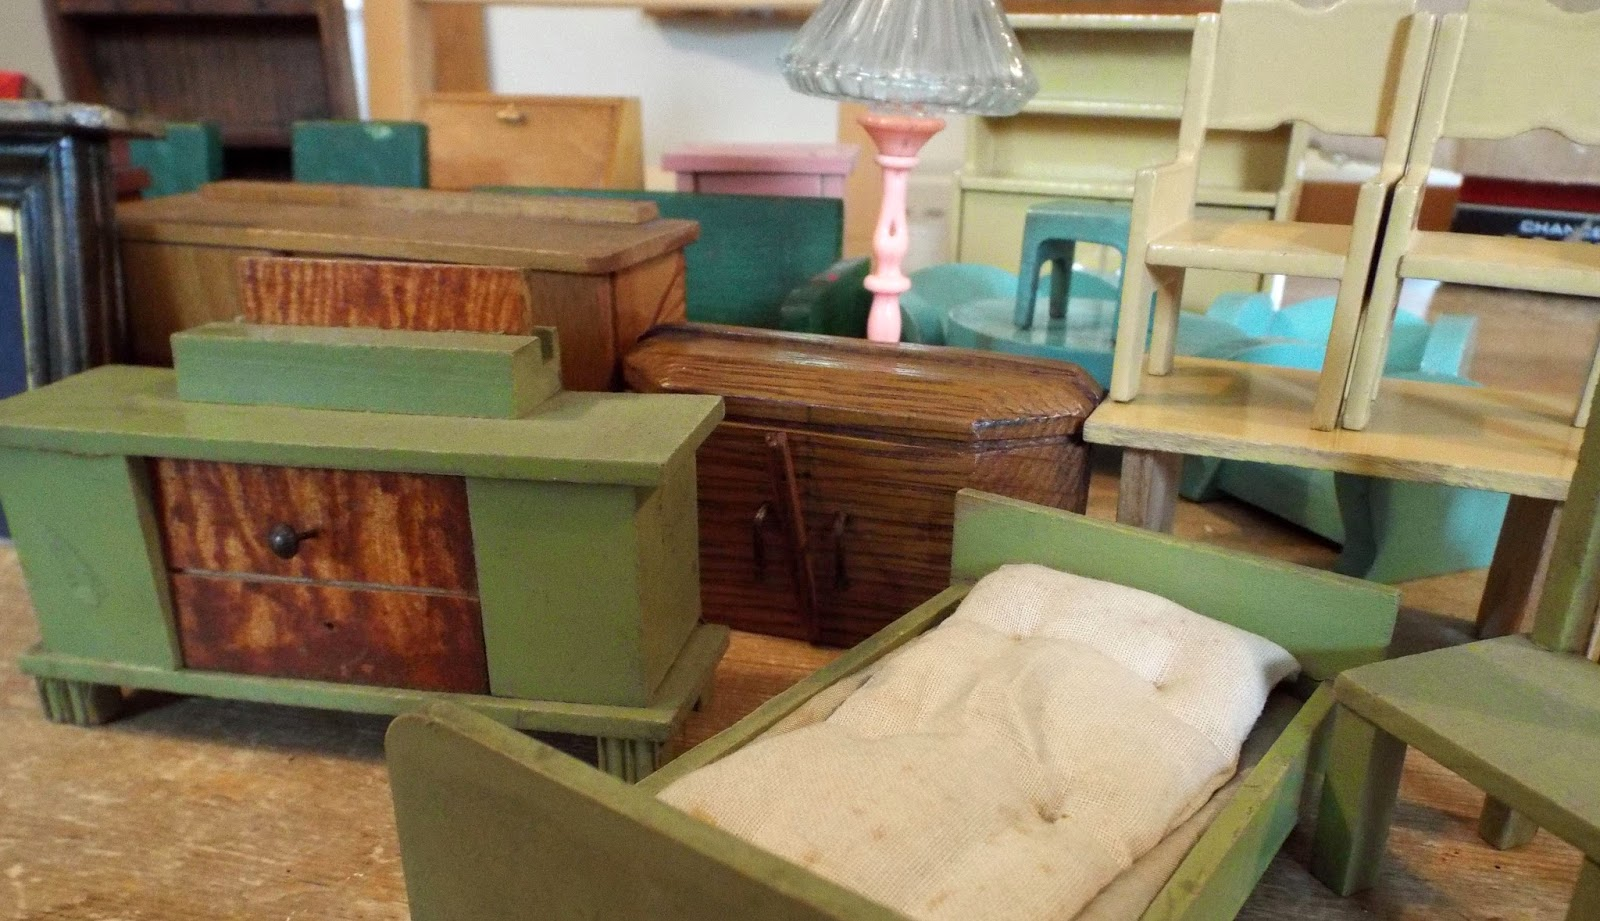 In The Past 24 Hours I Have Been Busy Listing Various Antique And Vintage  Dolls House Furniture To KT Miniatures Website.